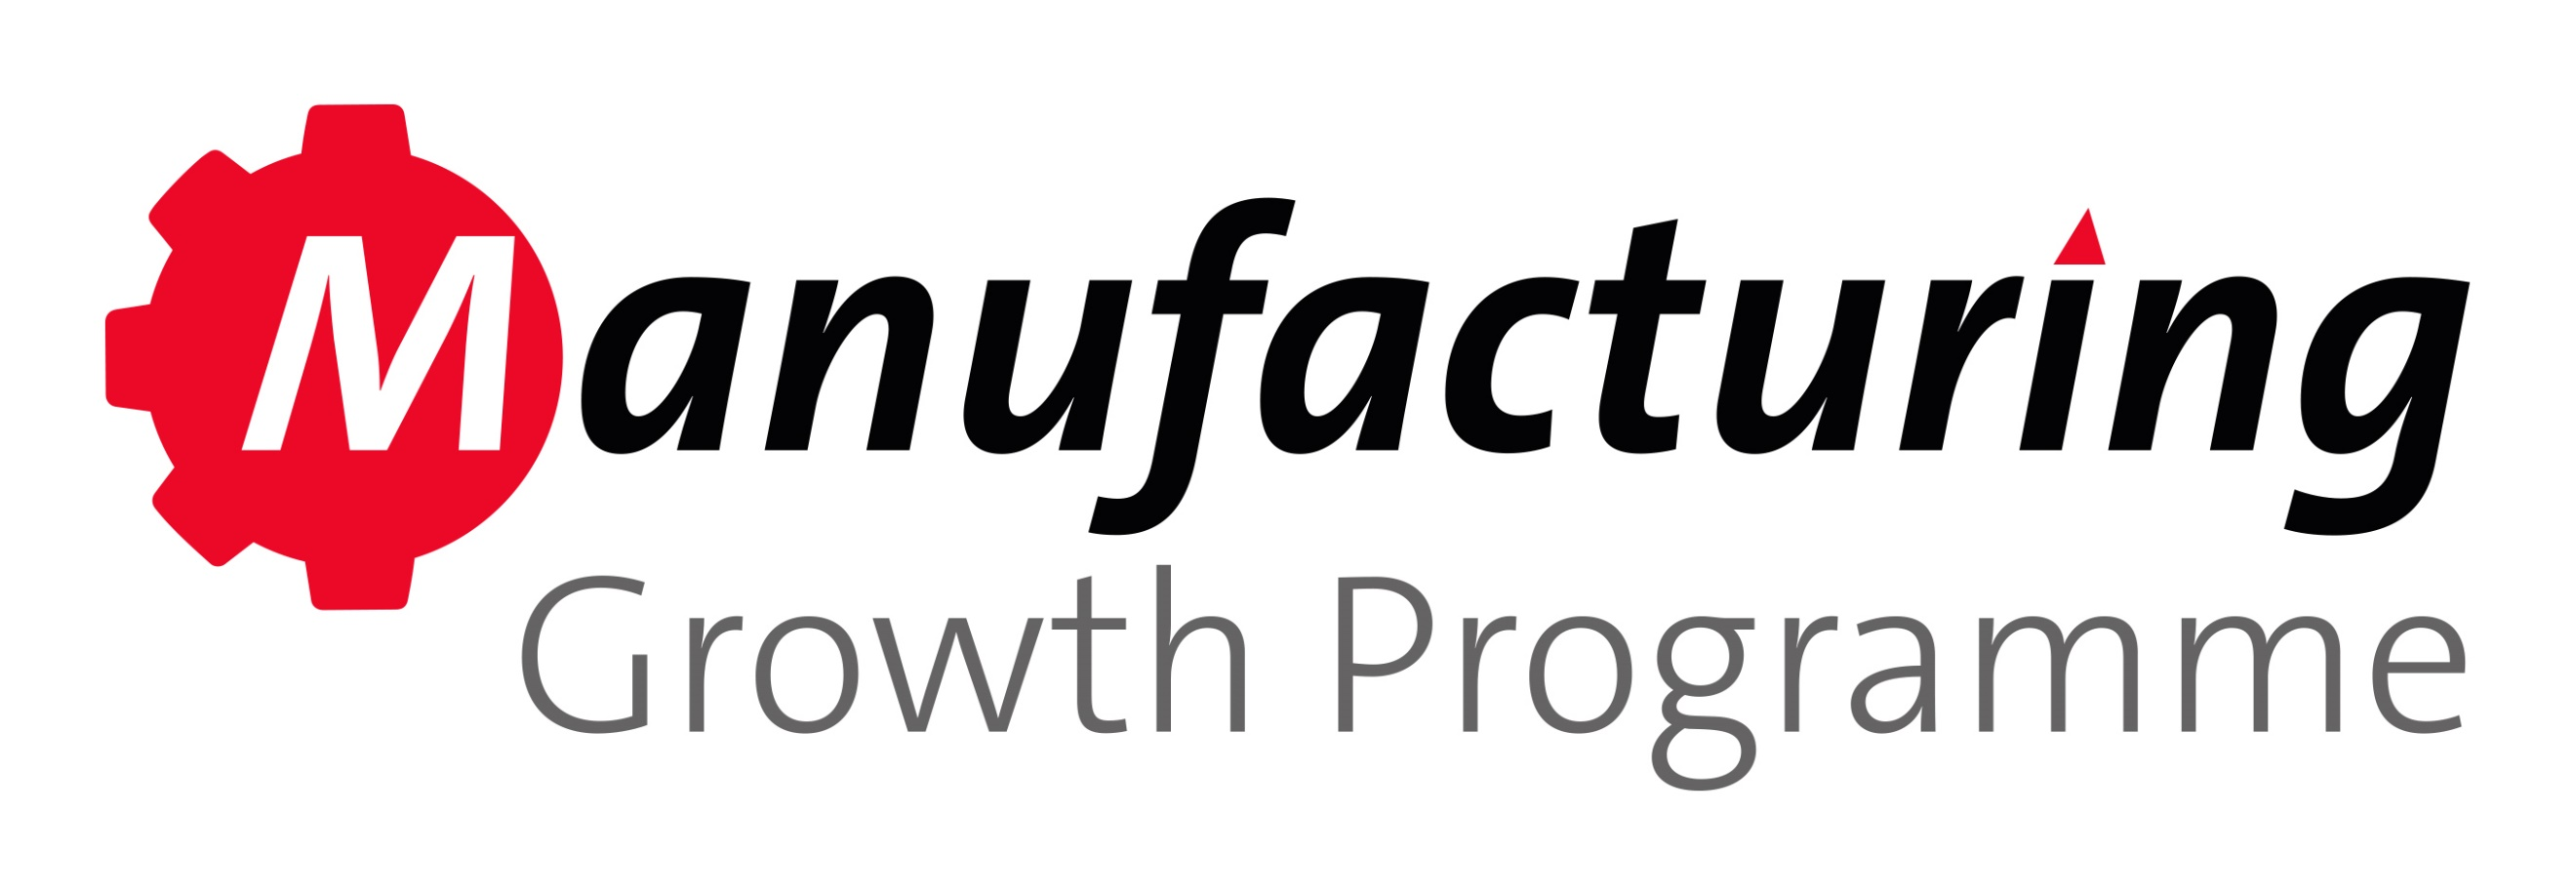 Manufacturing Growth Programme logo